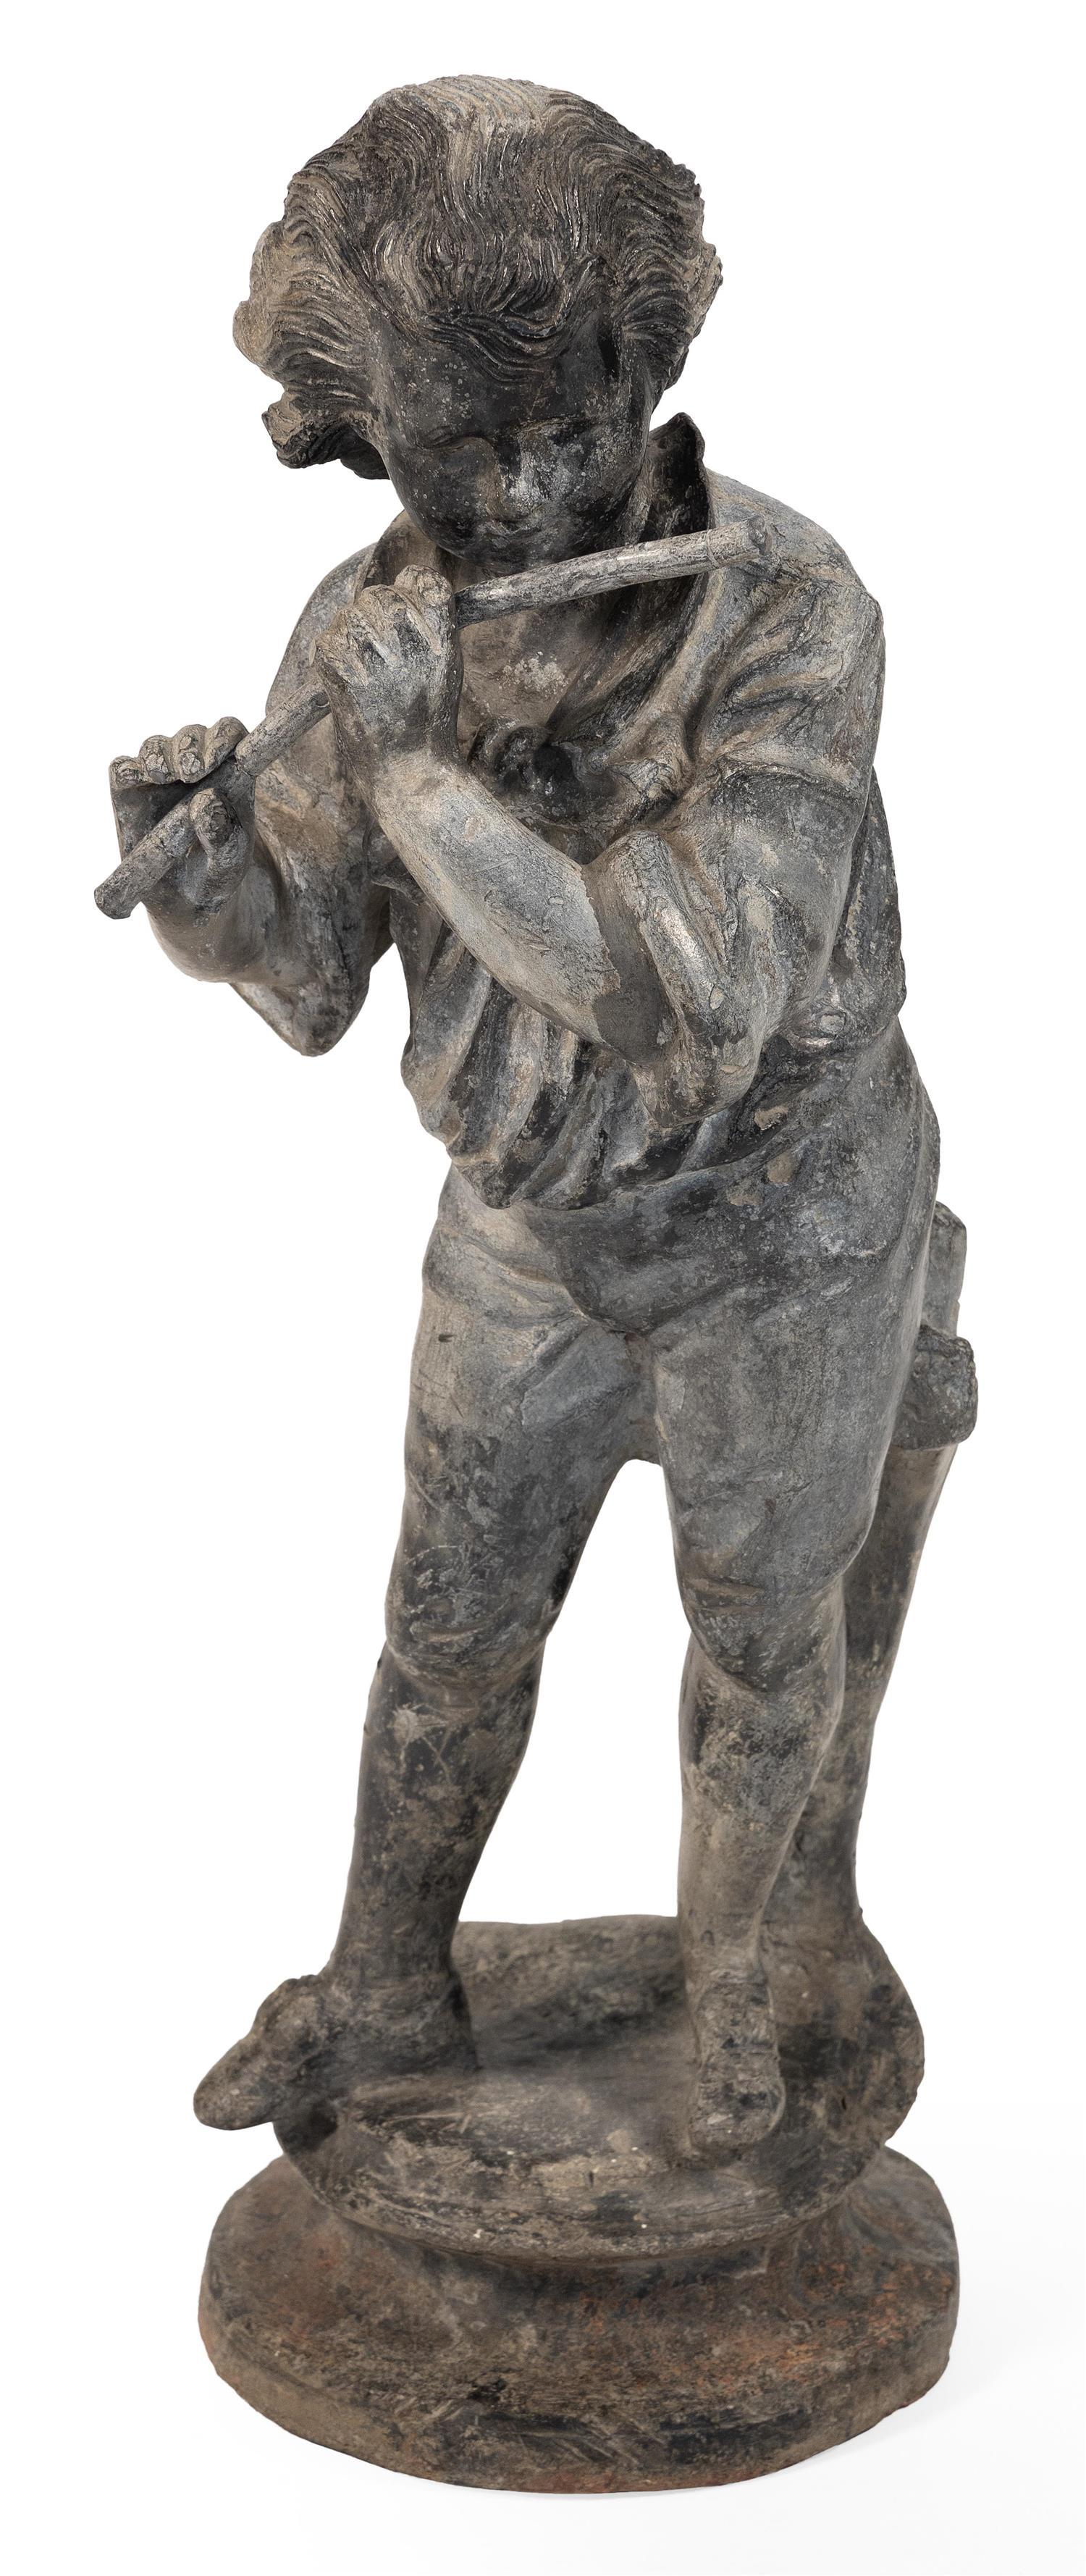 "LEAD GARDEN SCULPTURE OF A YOUNG BOY PLAYING THE FLUTE Unmarked. Height 25.5""."